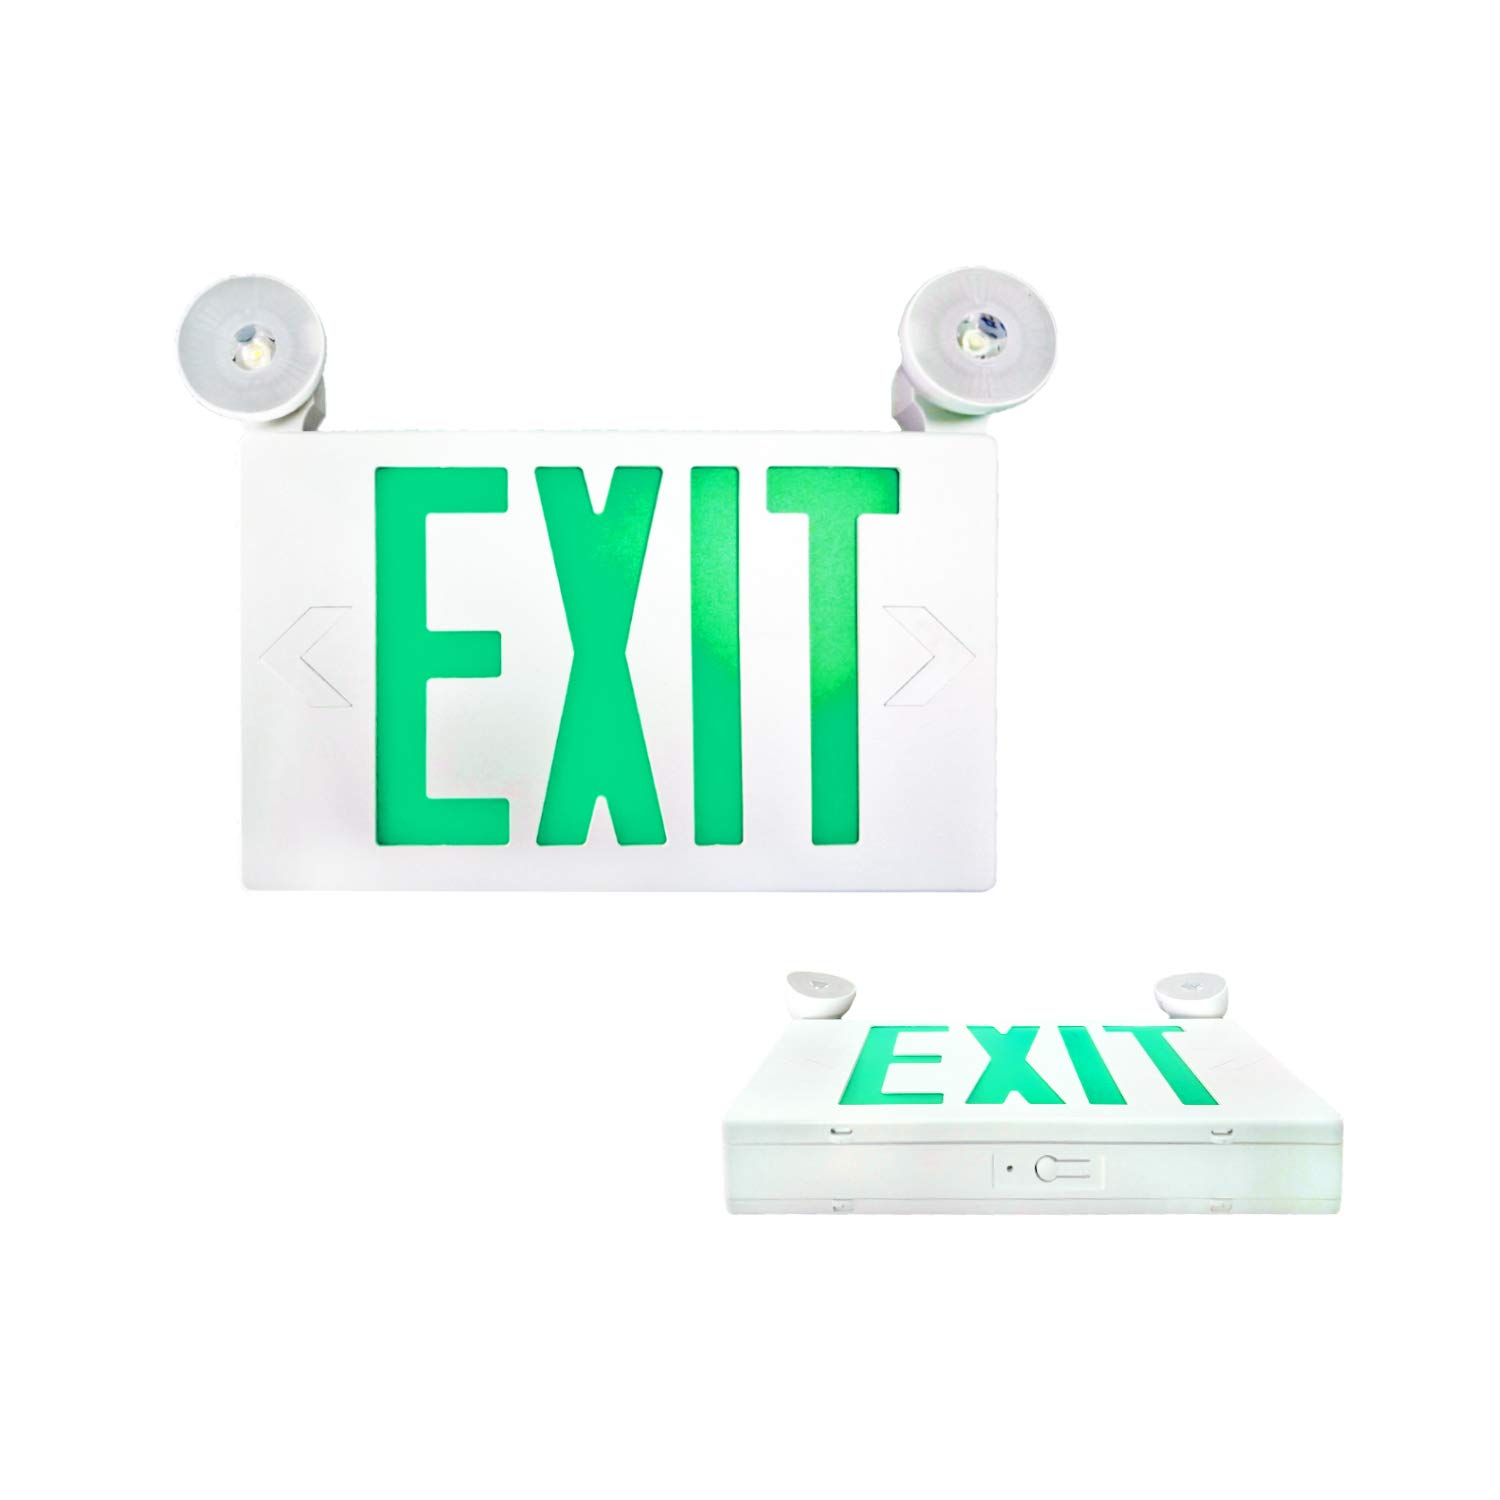 SPECTSUN LED Exit Sign Battery Backup, Green Exit Emergency Light with 2 Lamp Heads, Fire Exit Sign with Emergency Lights, Hardwired Exit Sign - 2 Pack, 120V Exit Sign, Commercial Emergency Exit Sign